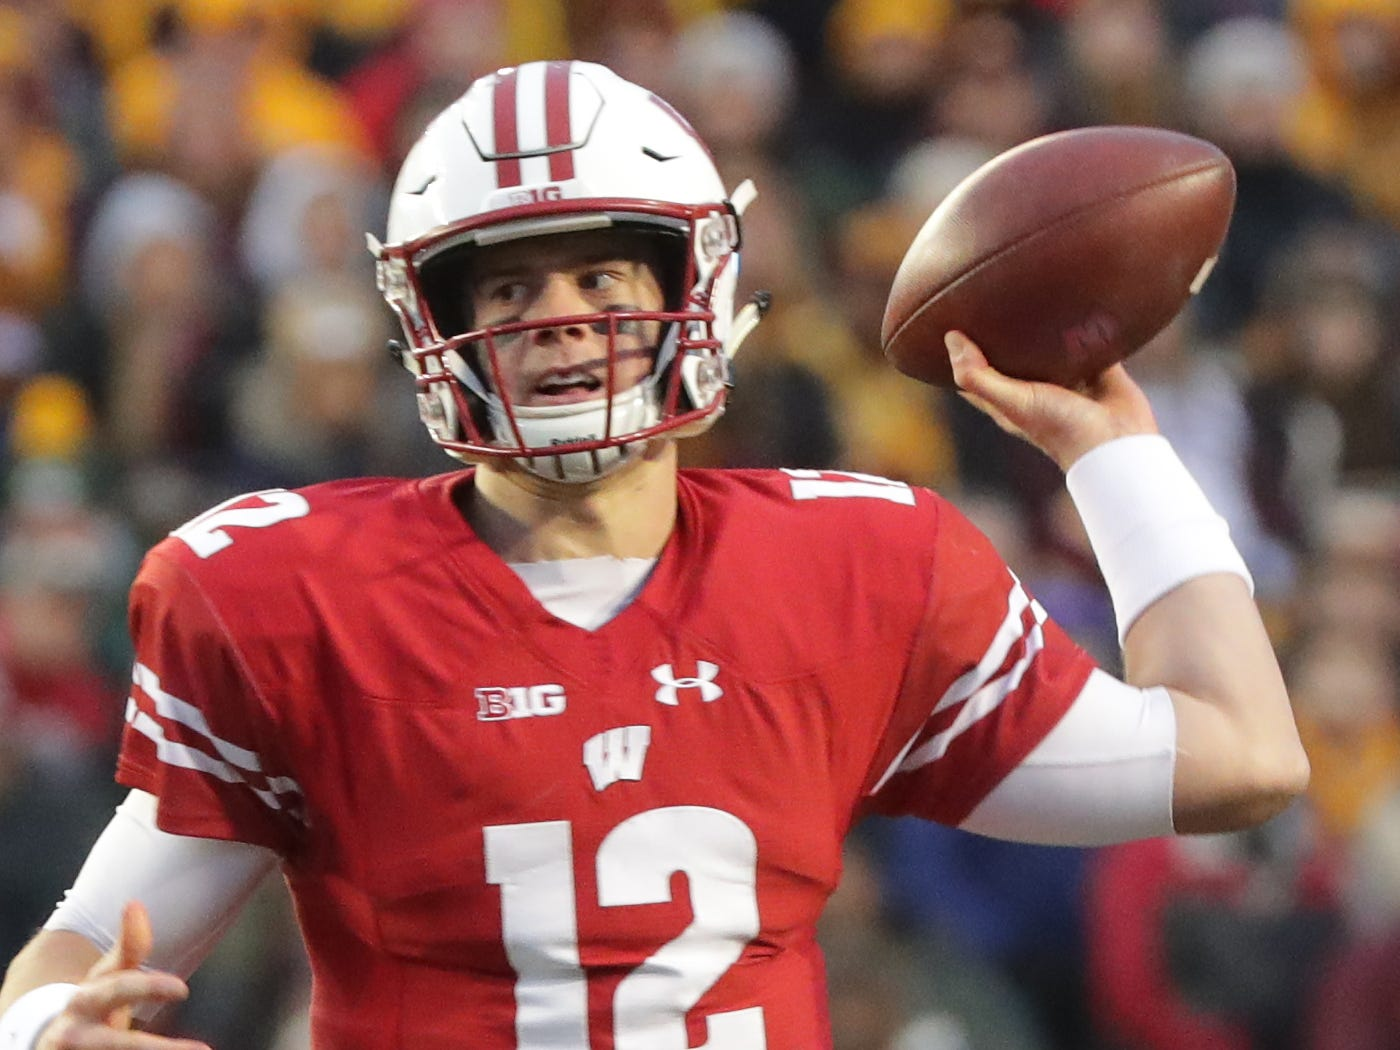 Wisconsin quarterback Alex Hornibrook gets ready to unleash a pass against Minnesota on Saturday. Hornibrook had a rather forgetful game with three interceptions and a lost fumble.